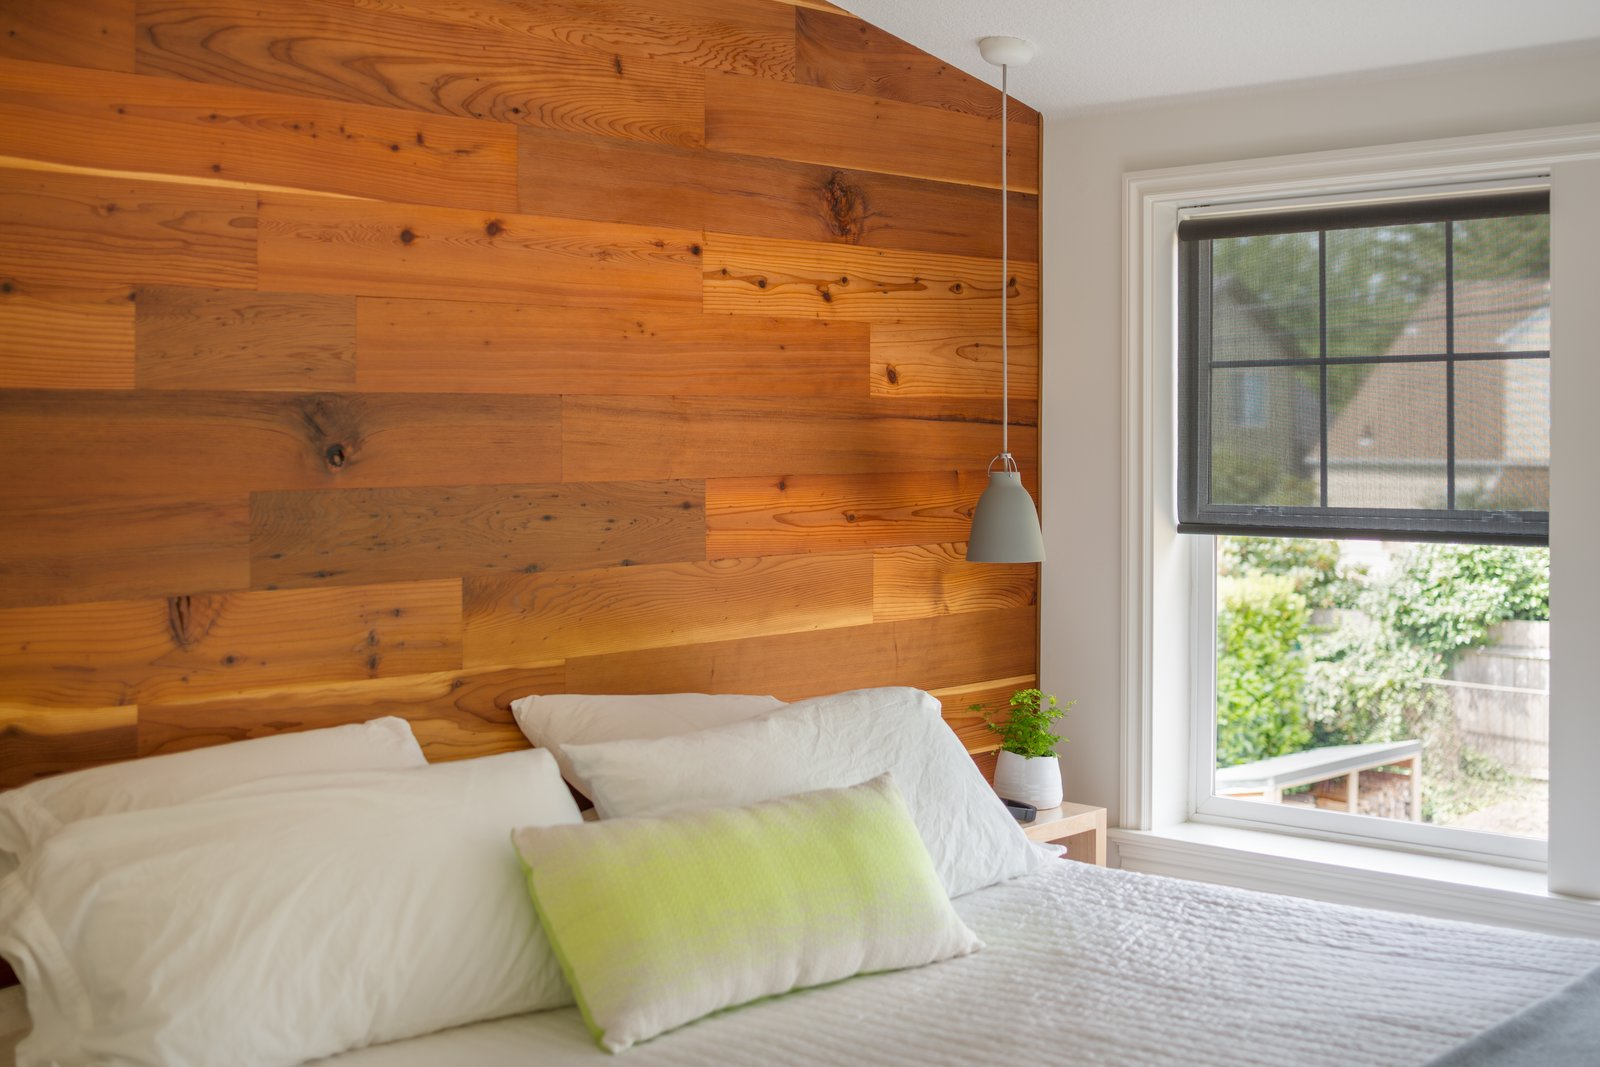 Cozy and minimalist, the wall becomes the headboard and focal point  Tagged: Carpet Floor, Bedroom, Pendant Lighting, and Bed.  Hurst Avenue by Guggenheim Architecture + Design Studio